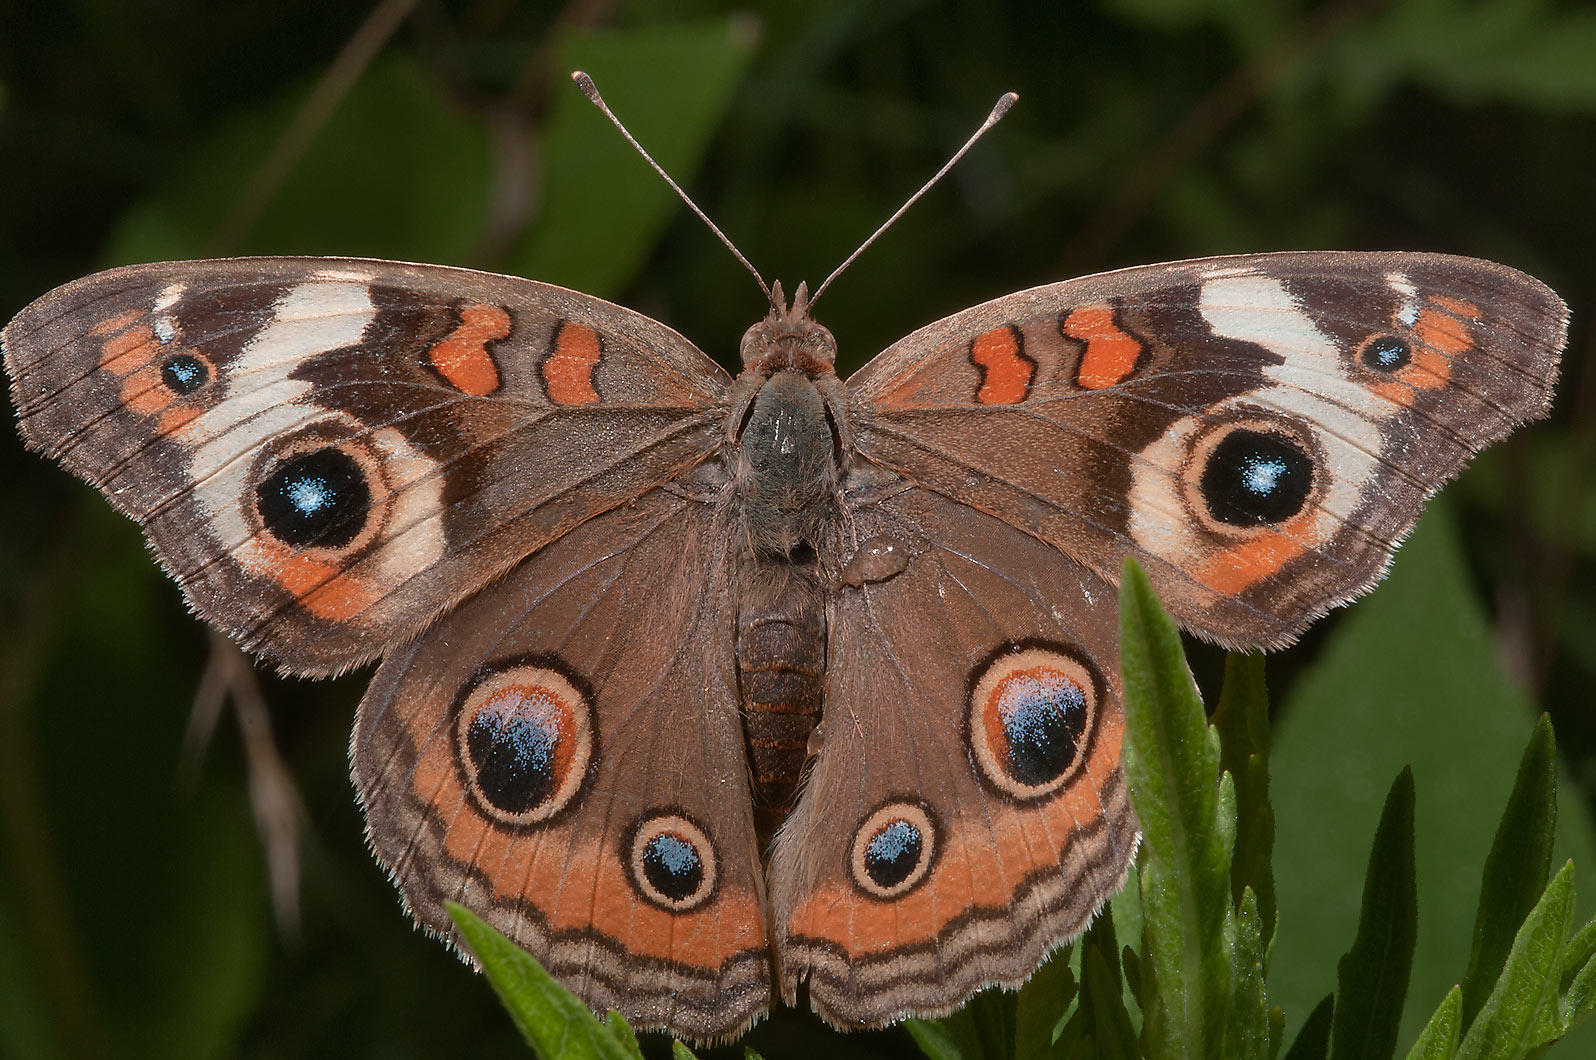 Common buckeye butterfly in Lake Bryan Park. Bryan, Texas